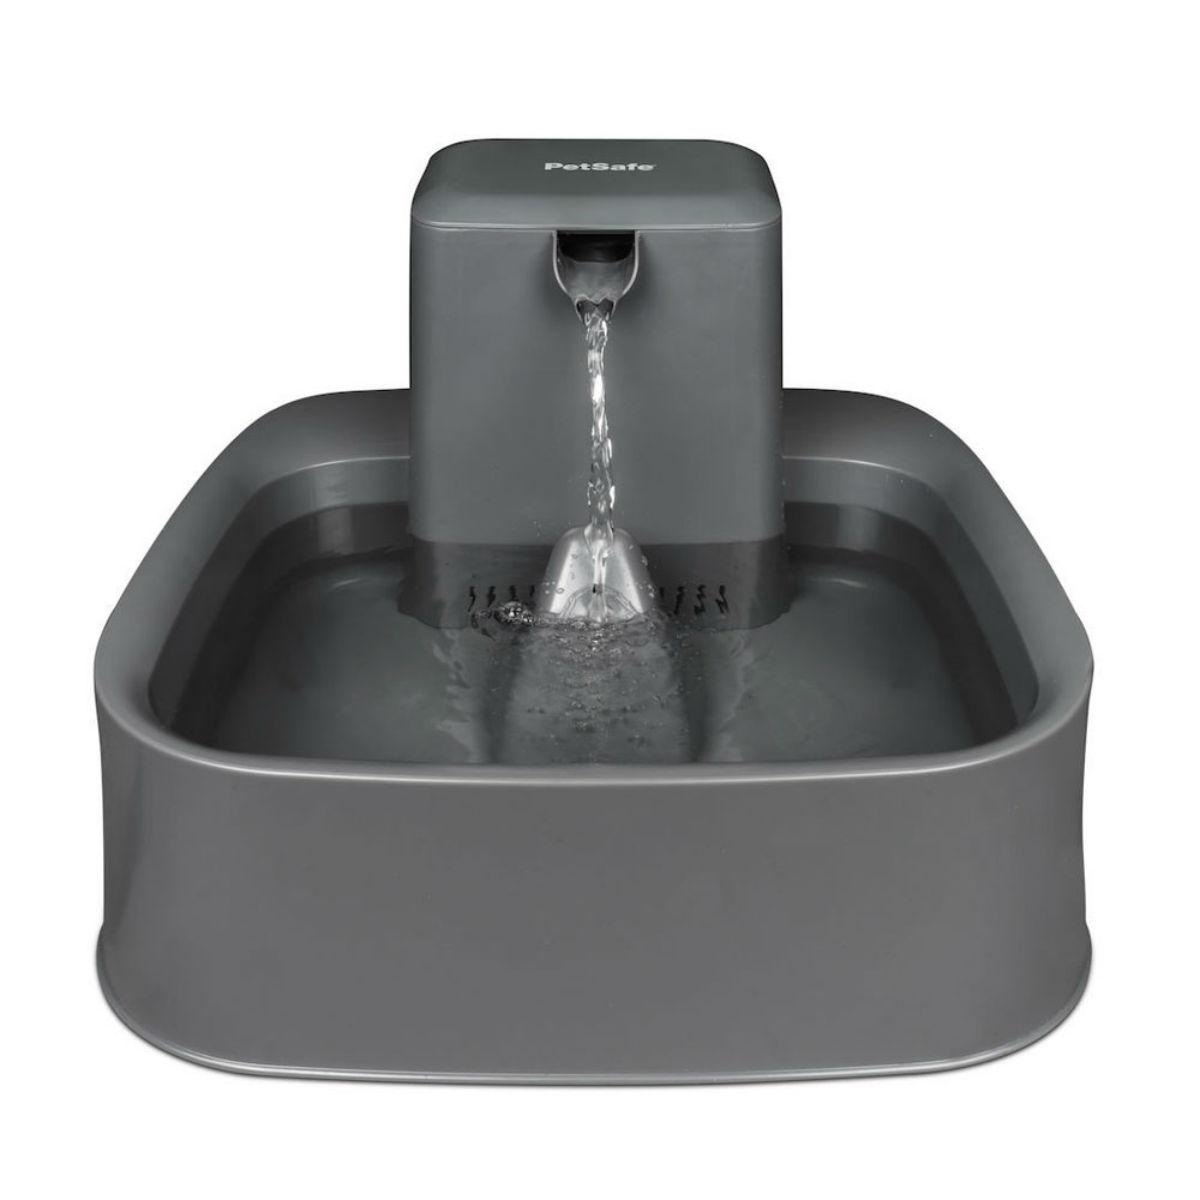 Drinkwell 2 Gallon Dog and Cat Fountain - Gray